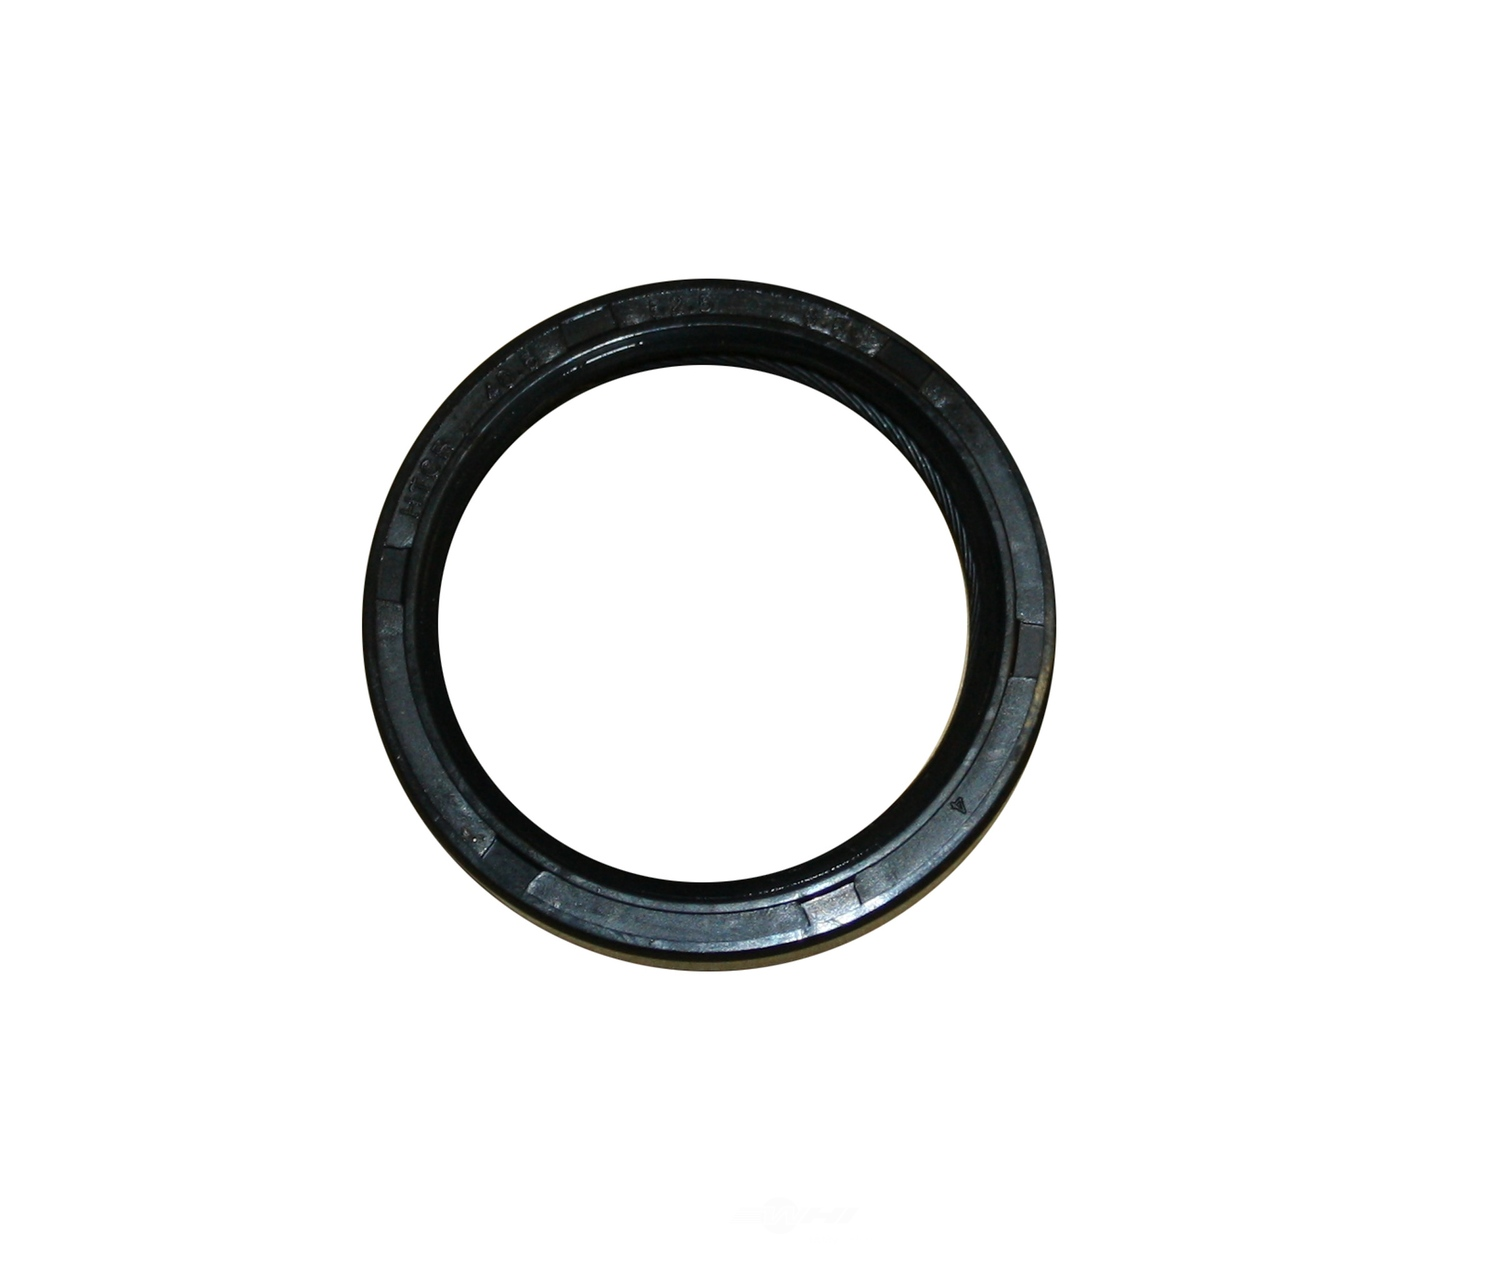 Rubber D/&D PowerDrive 2761030 EPTON Industries Replacement Belt 103.75 Length 6 Band